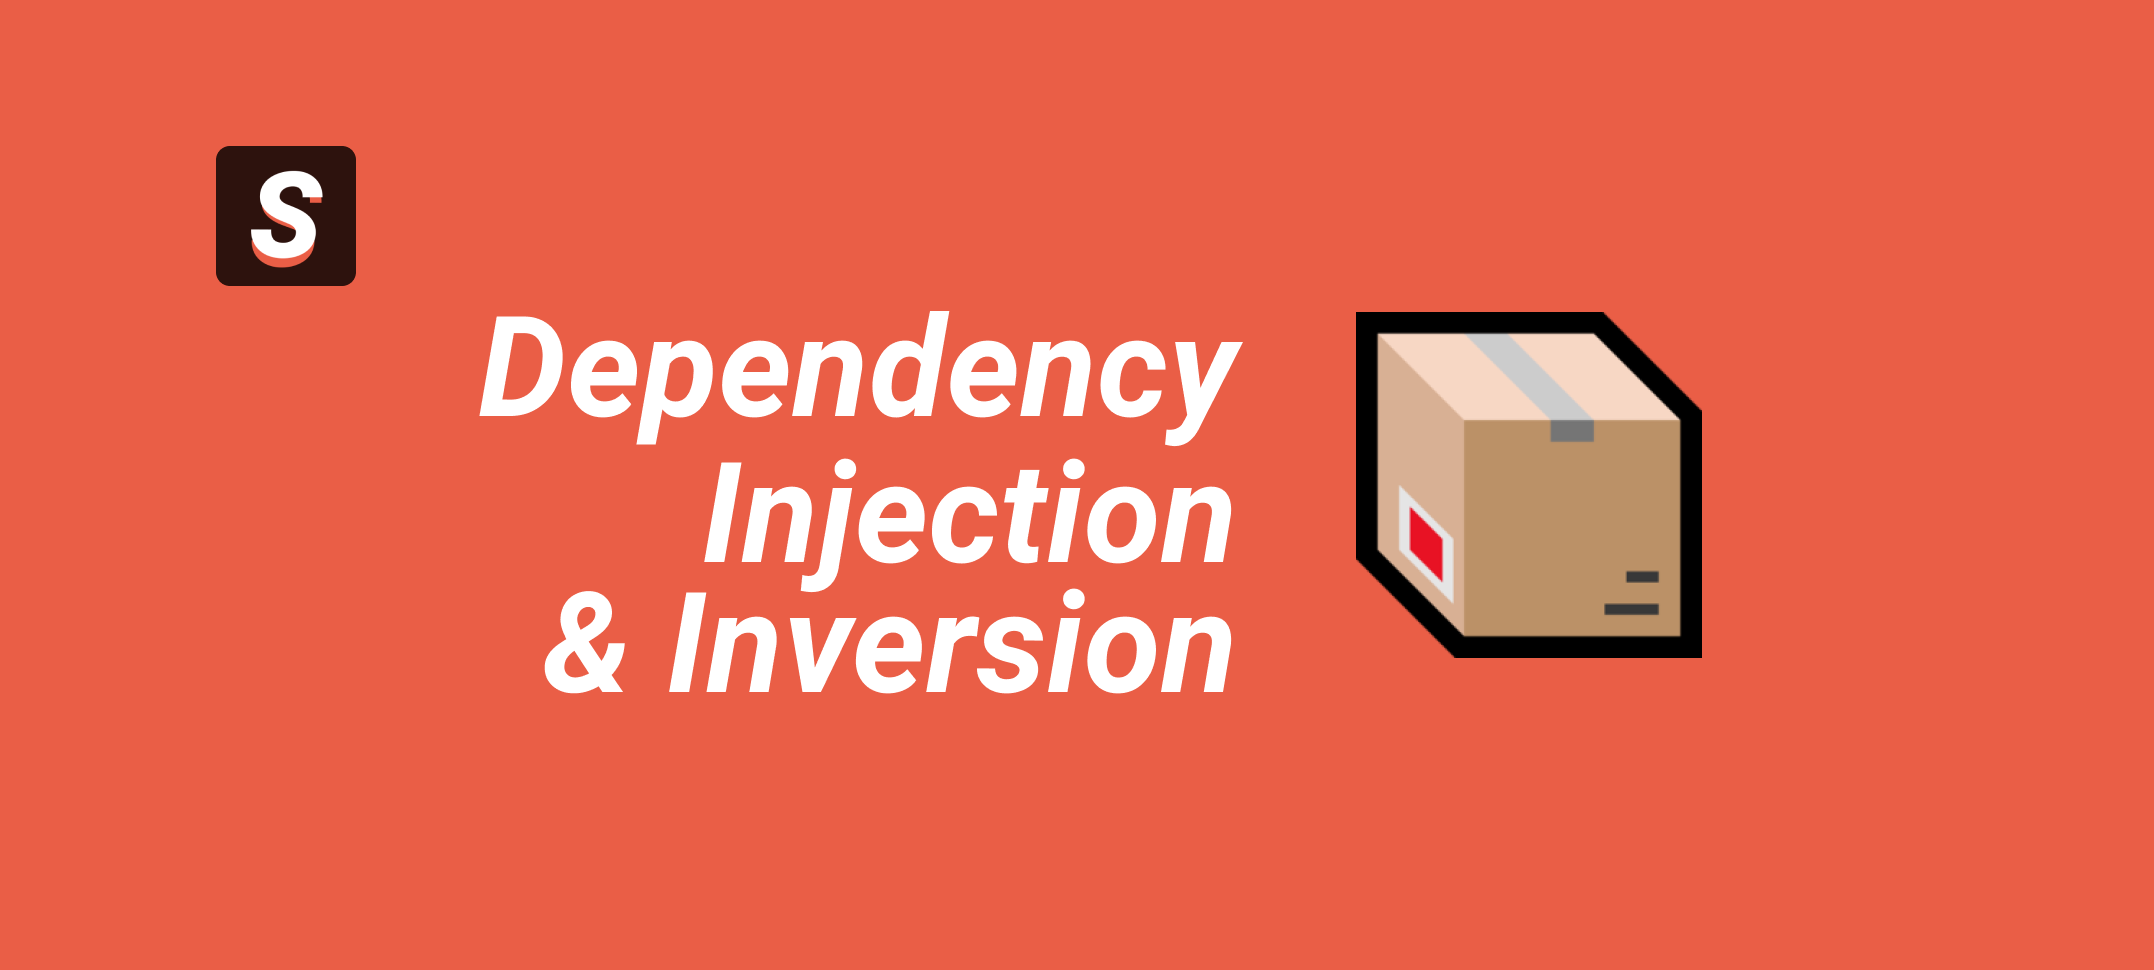 Dependency Injection & Inversion Explained | Node js w